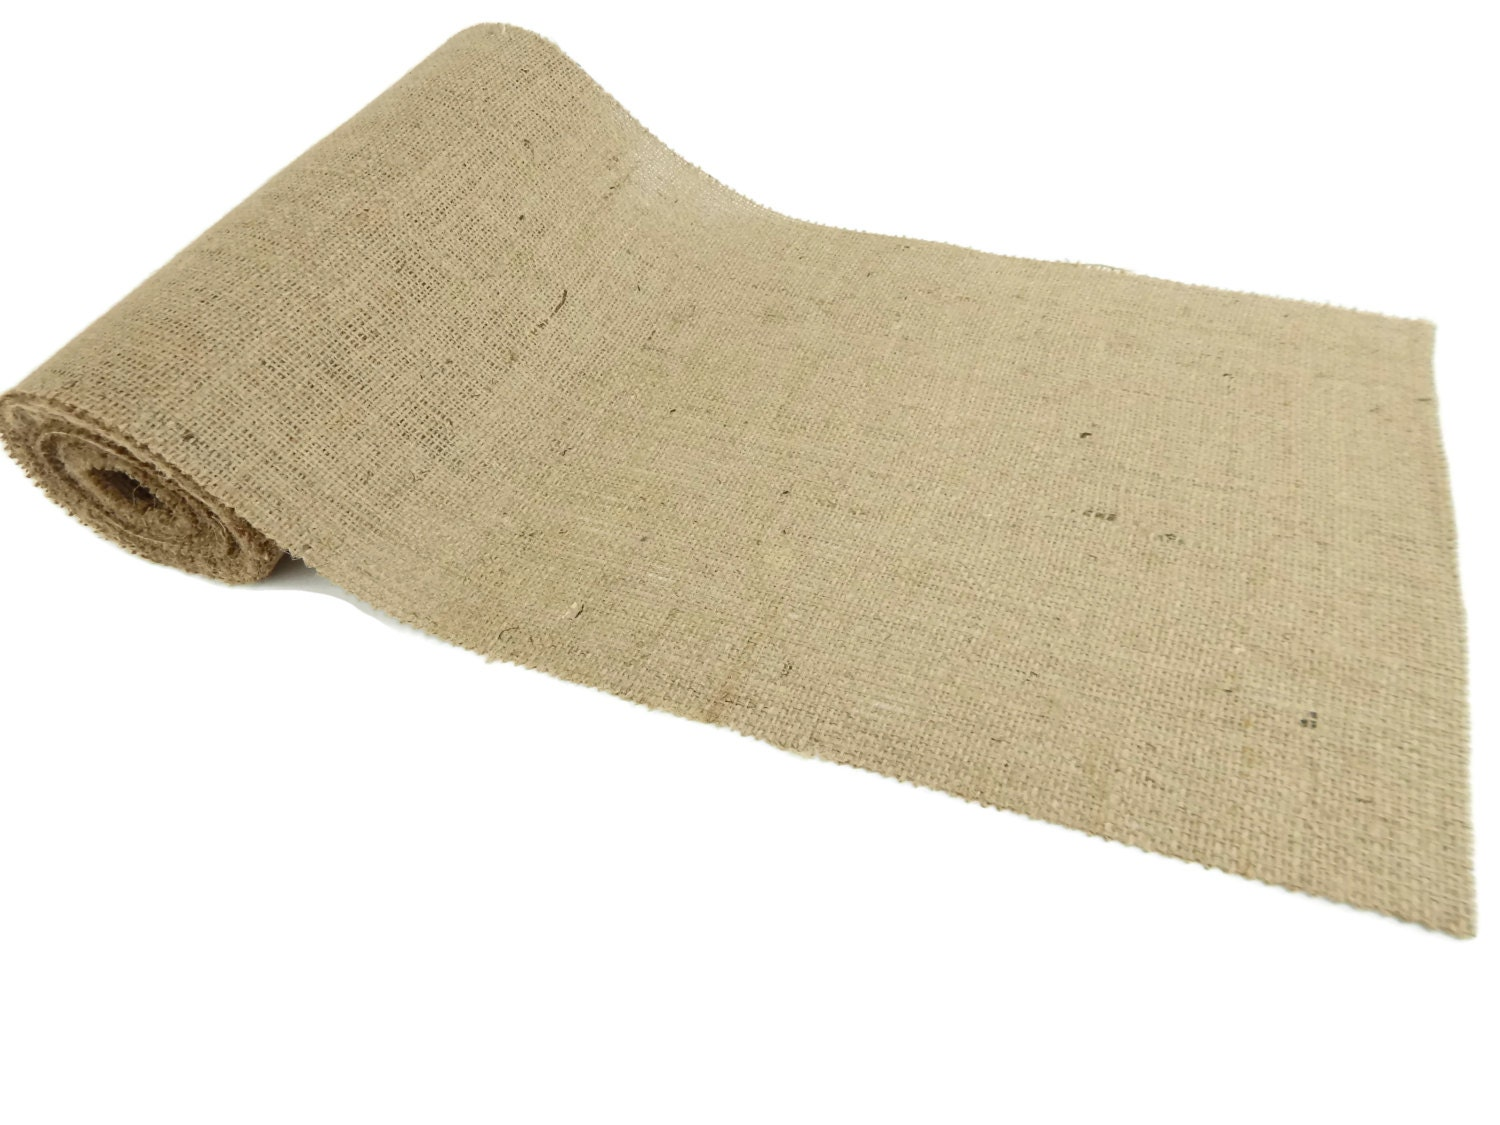 Burlap table runner 12 inches wide 10 feet long premium for 10 foot table runner